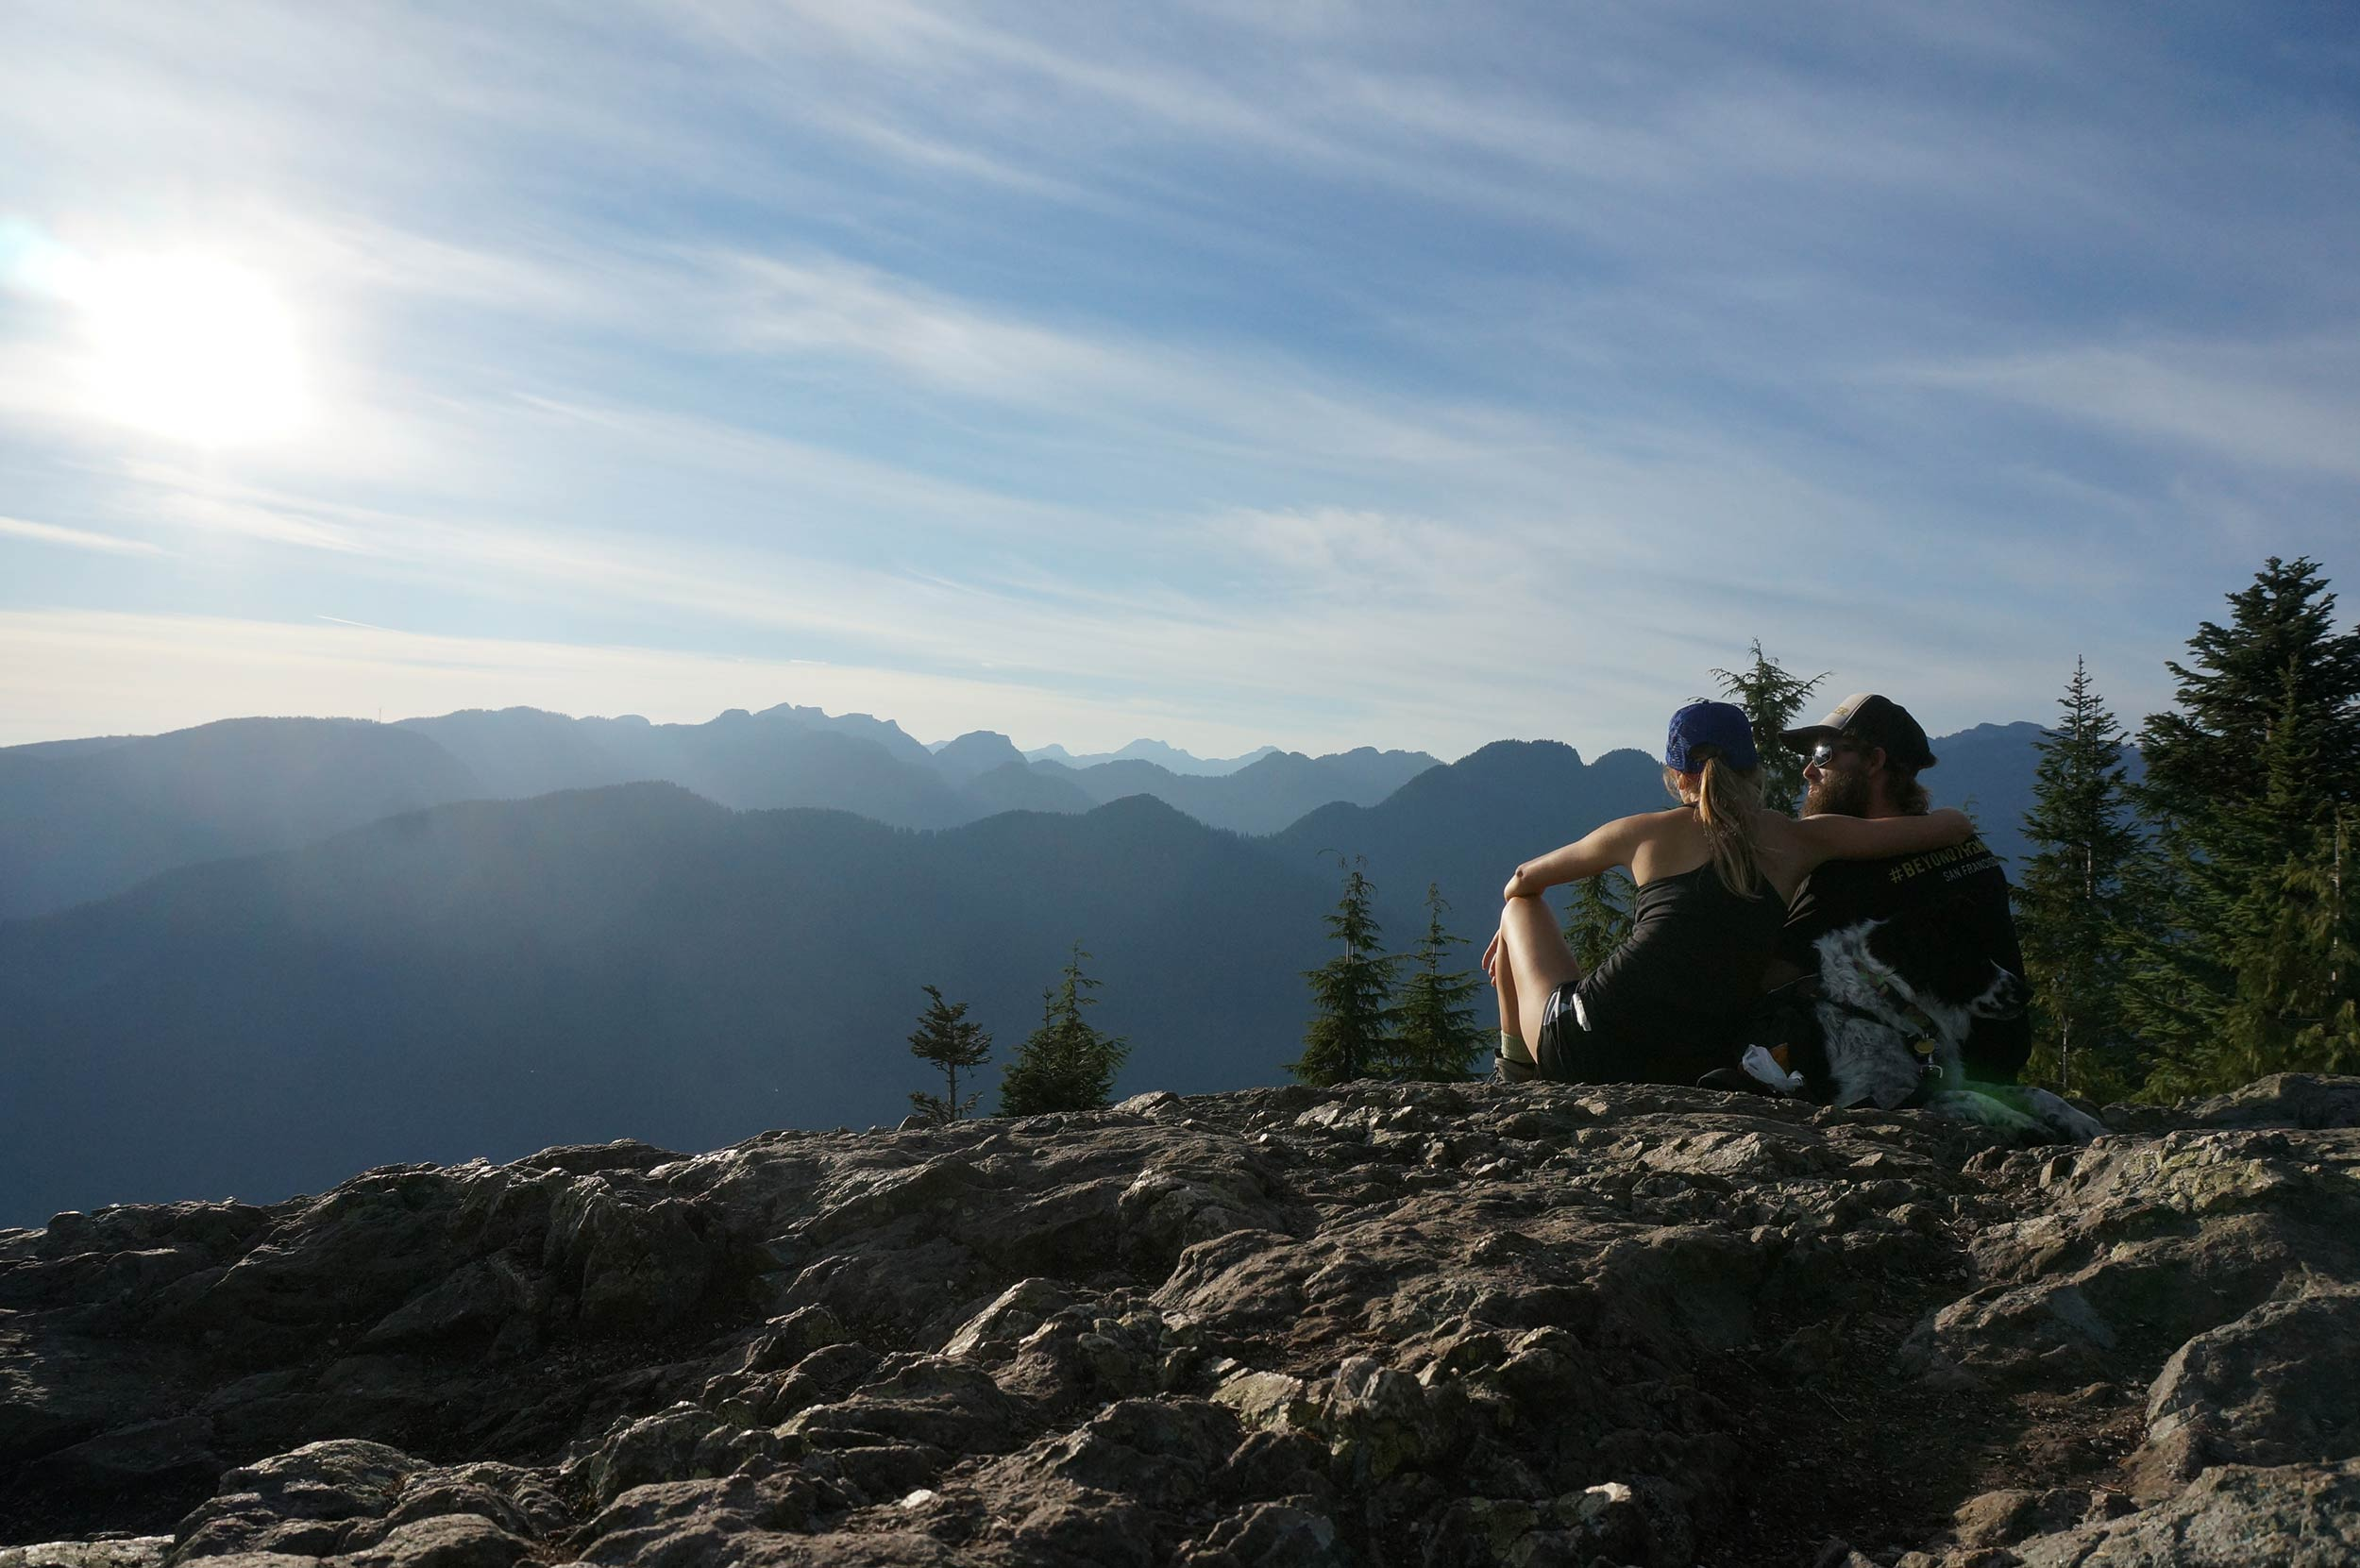 mt_seymour_dog_mountain1.jpg